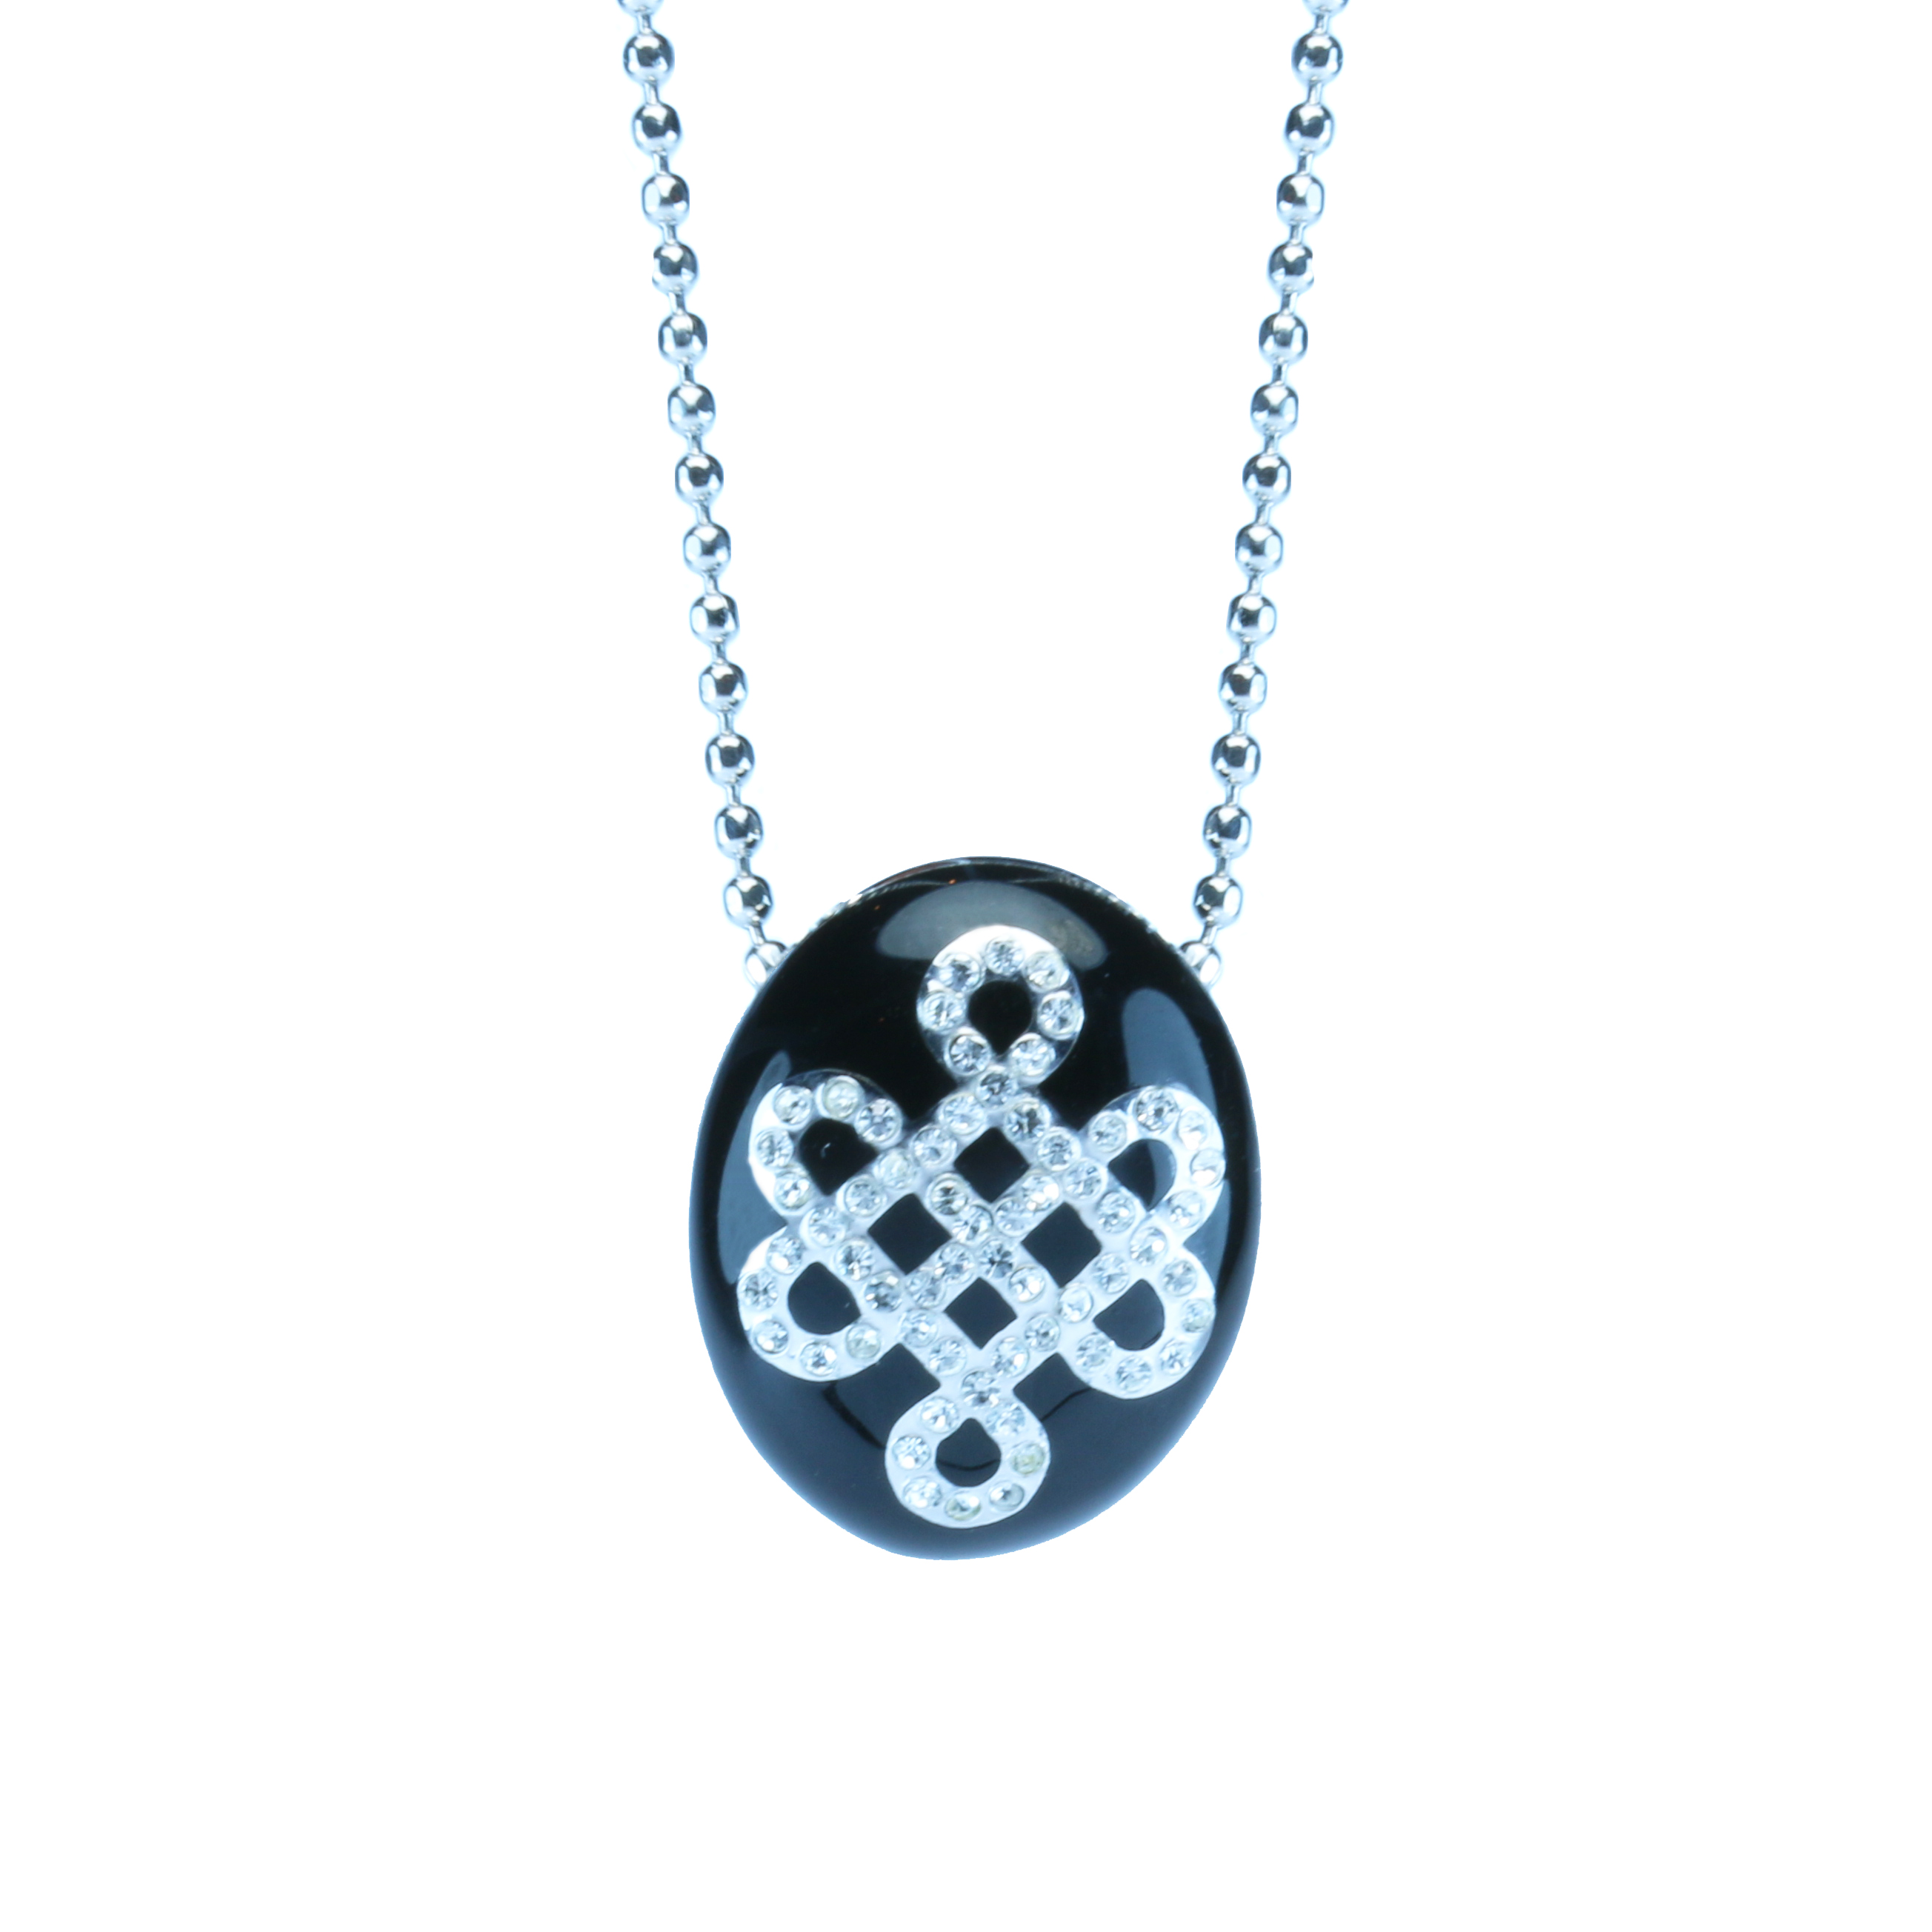 Crystal mystic knot pendant enamel crystal mystic knot pendant solid black mozeypictures Image collections